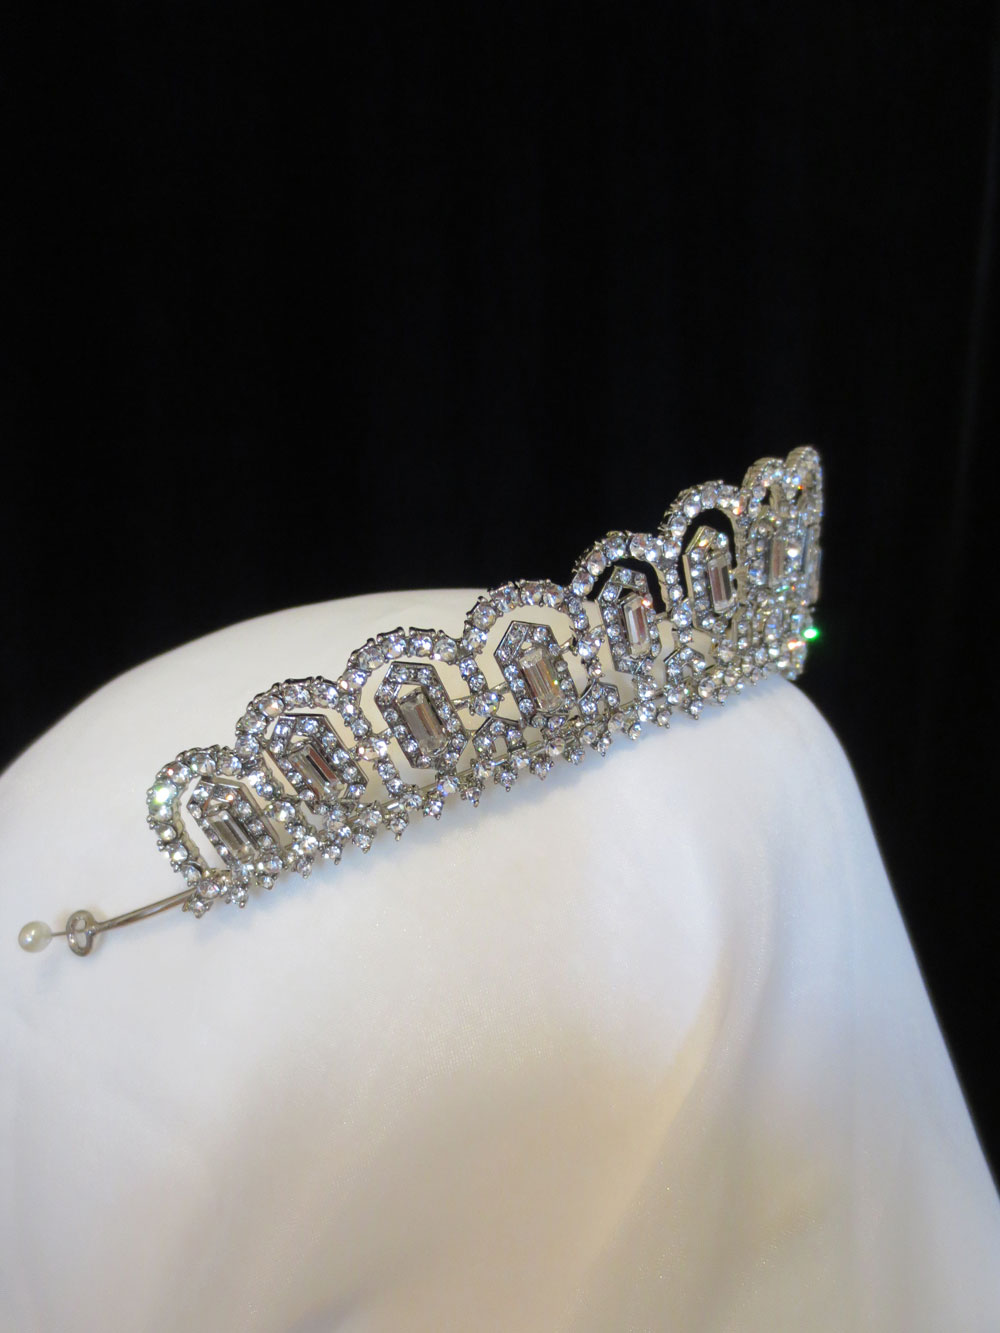 John-Zimmerman-Couture-Headpieces-and-Tiaras-Model-Mary-Gallery-Image-2